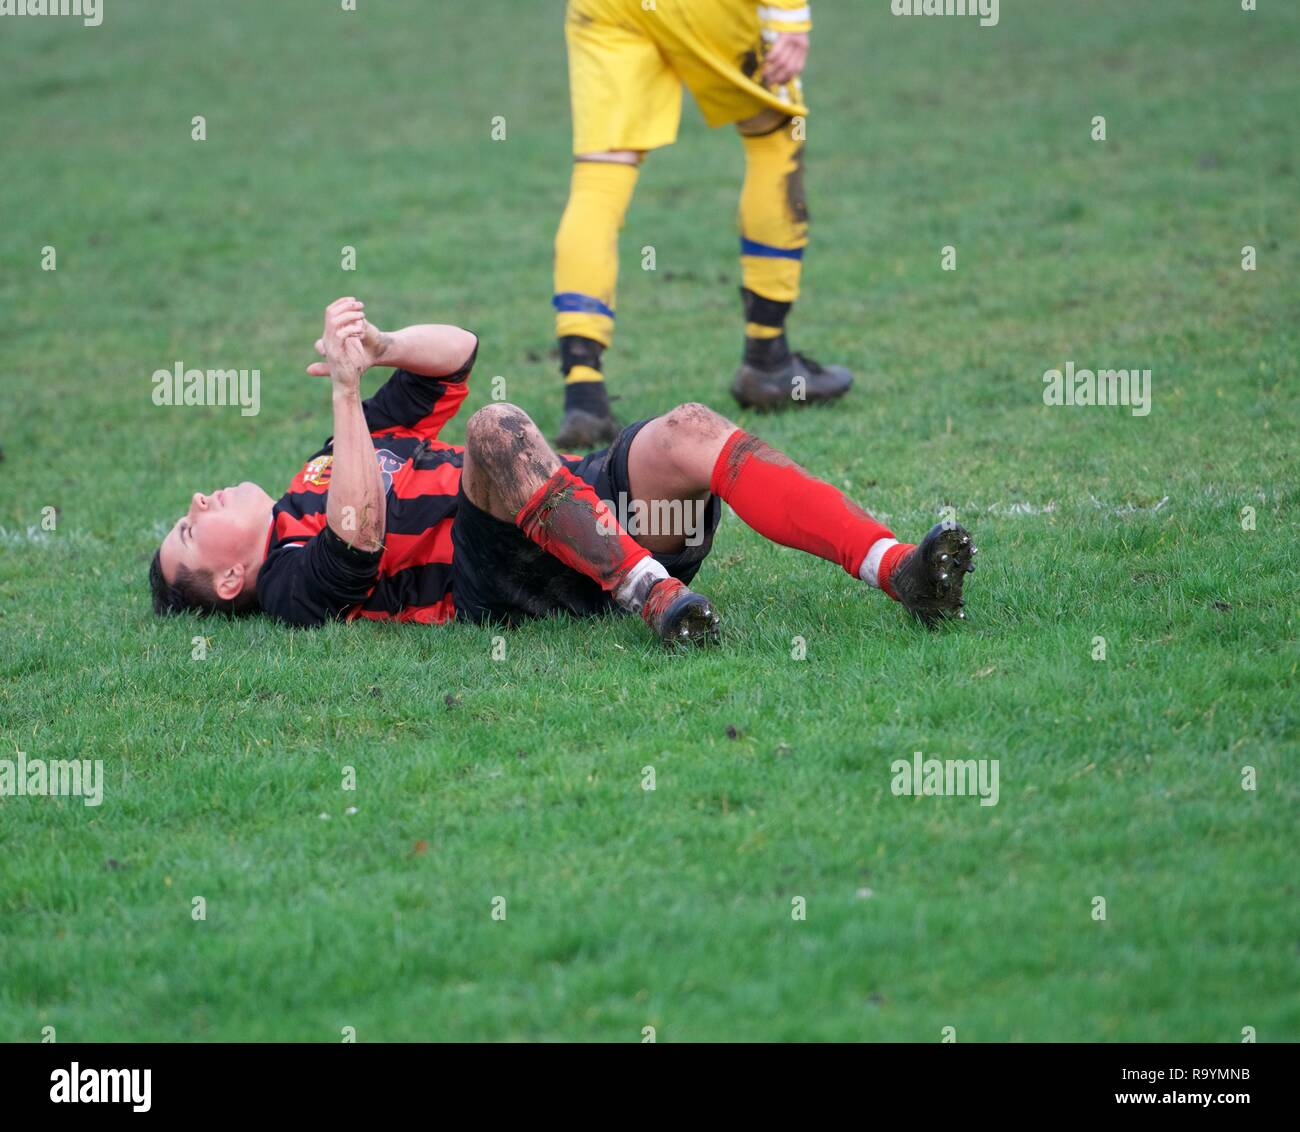 Sports injury in the match between Buxwotth( red and black0 and Melandra Castle (yellow) in the Hope Valley Amateur League on December 29th, 2018. Stock Photo